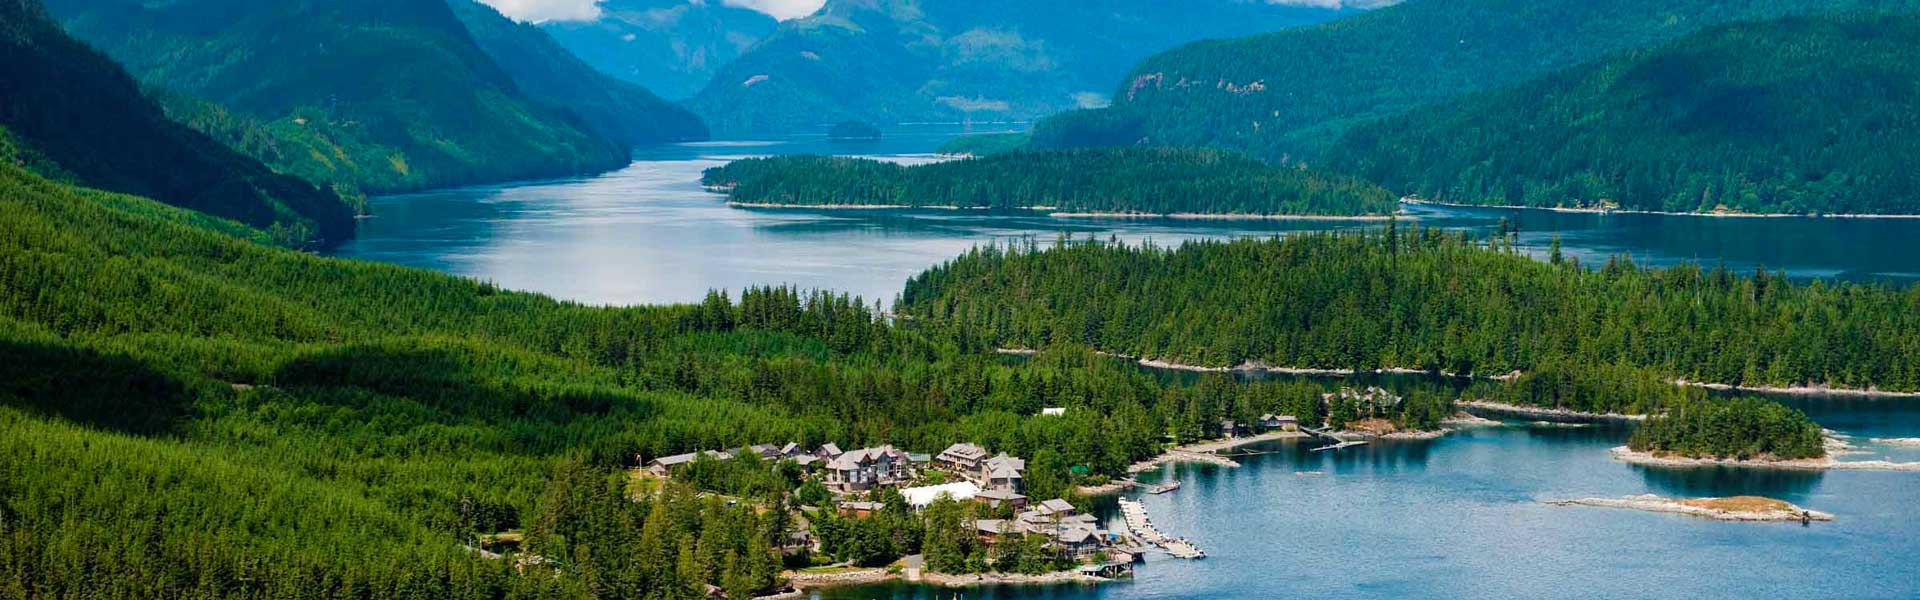 Our Best Canada West Coast Vacation Packages and Road Trips